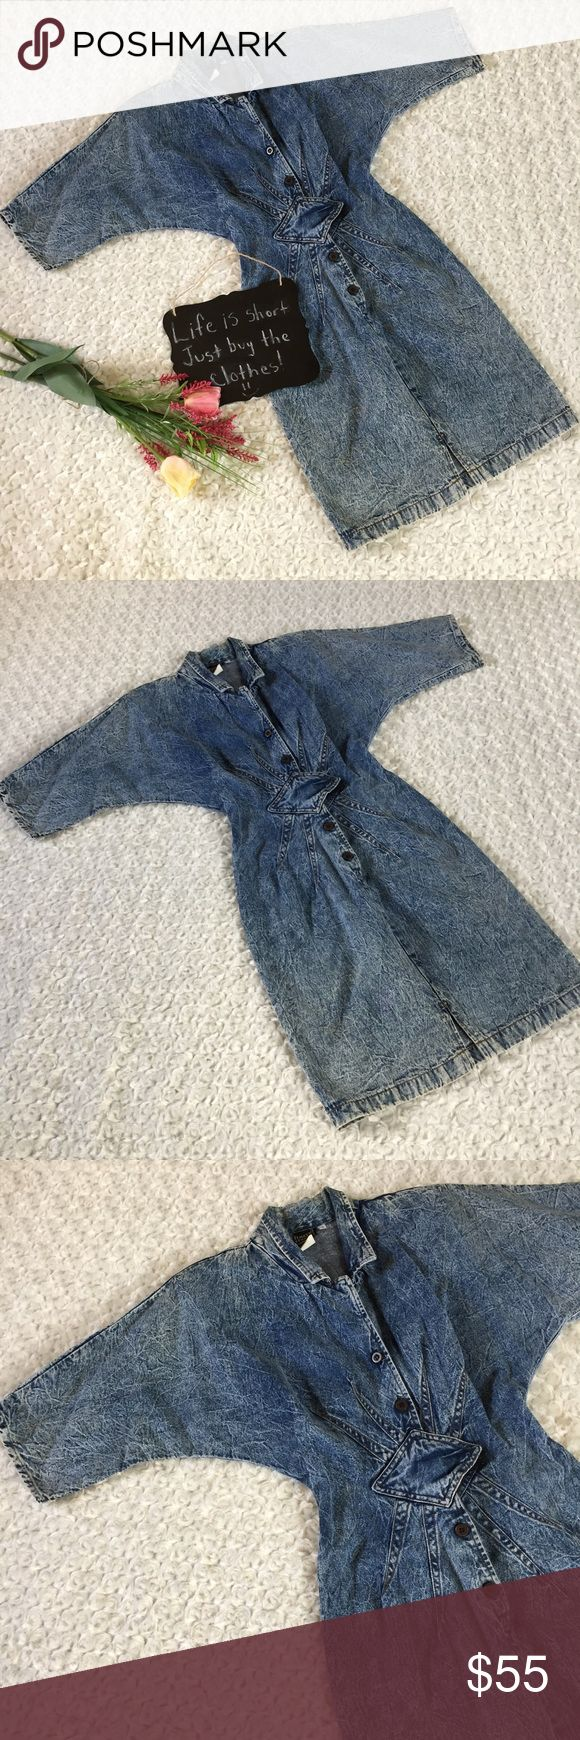 "Vintage Timely Trends denim dress❤❤ This denim dress is A-MAZING!!!! It is vintage Timely Trends brand. Made in the USA. Very grunge looking! Acid wash. This could be worn many ways!! Size 7/8. 17"" arm pit to arm pit. 12.5"" waist. 39"" length. Dresses"